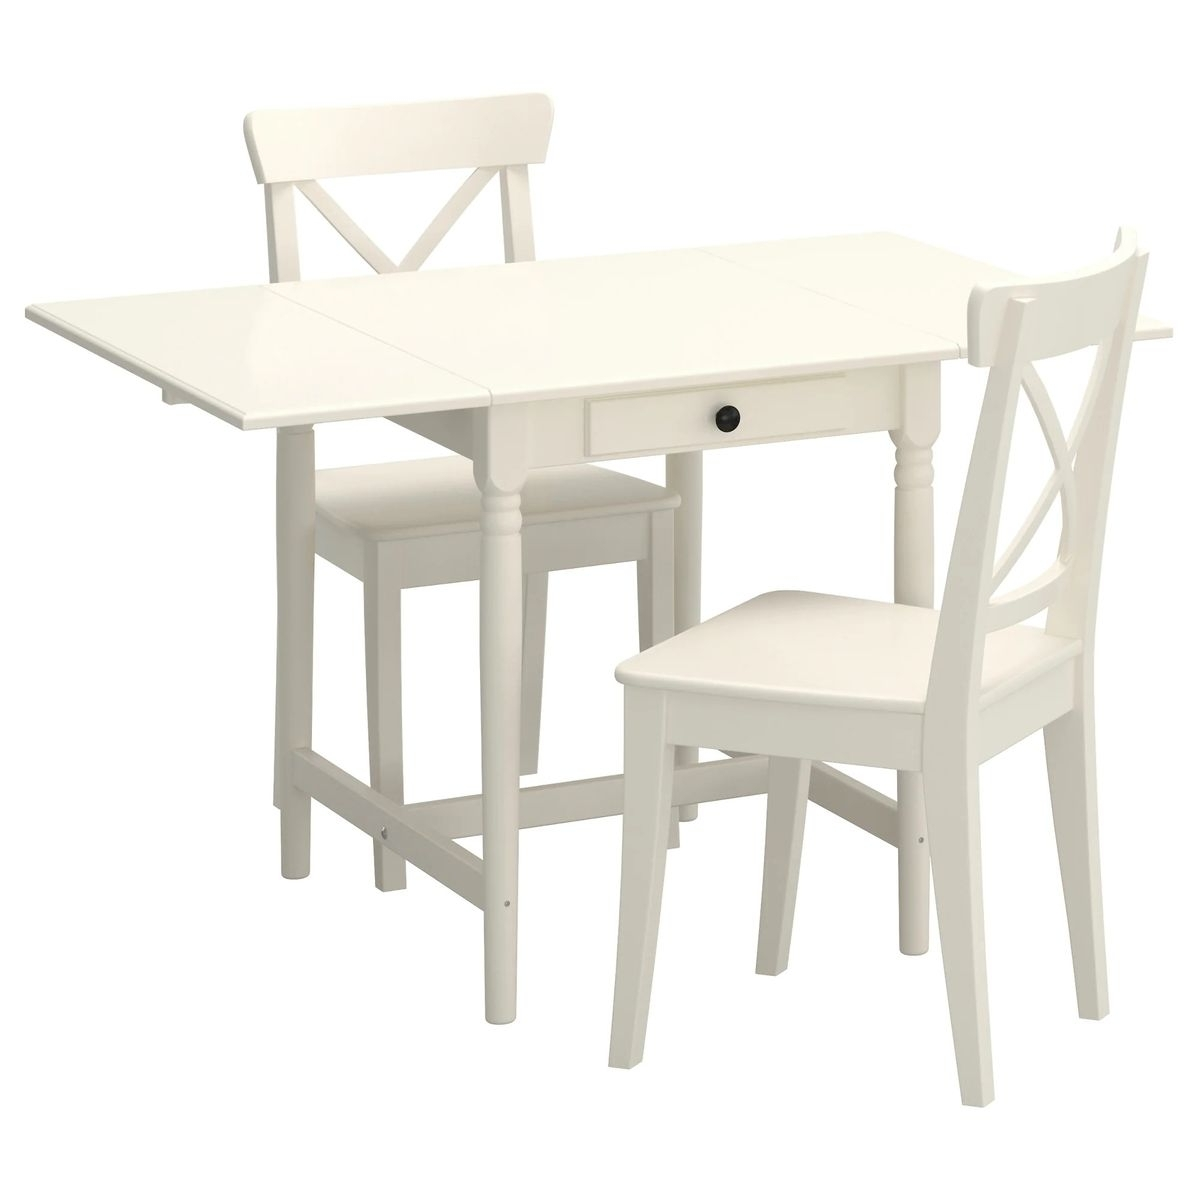 Widely Used Small Dining Tables For Apartments – Curbed For Dining Tables For Two (View 24 of 25)